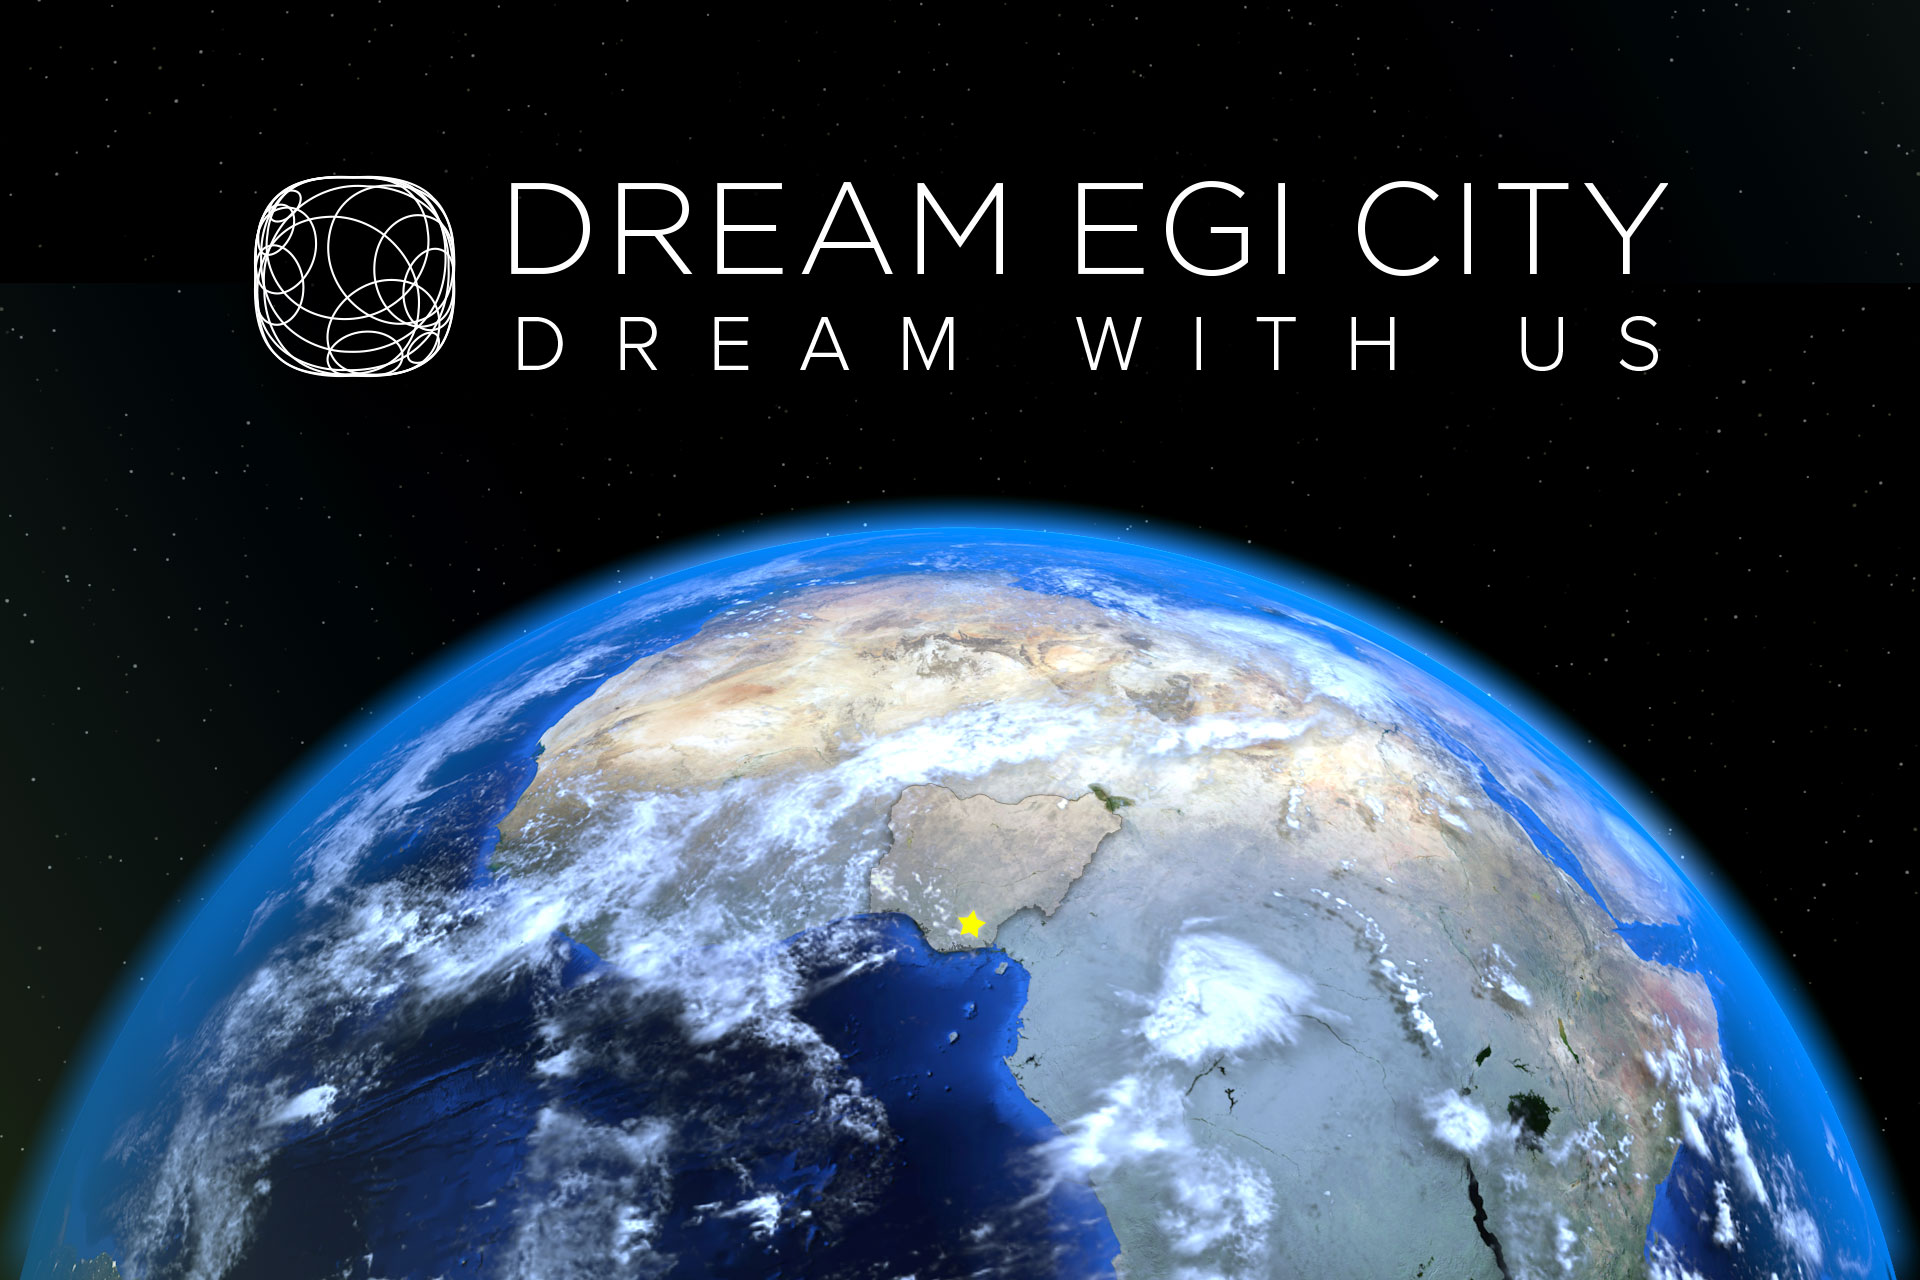 work-dream_egi_04